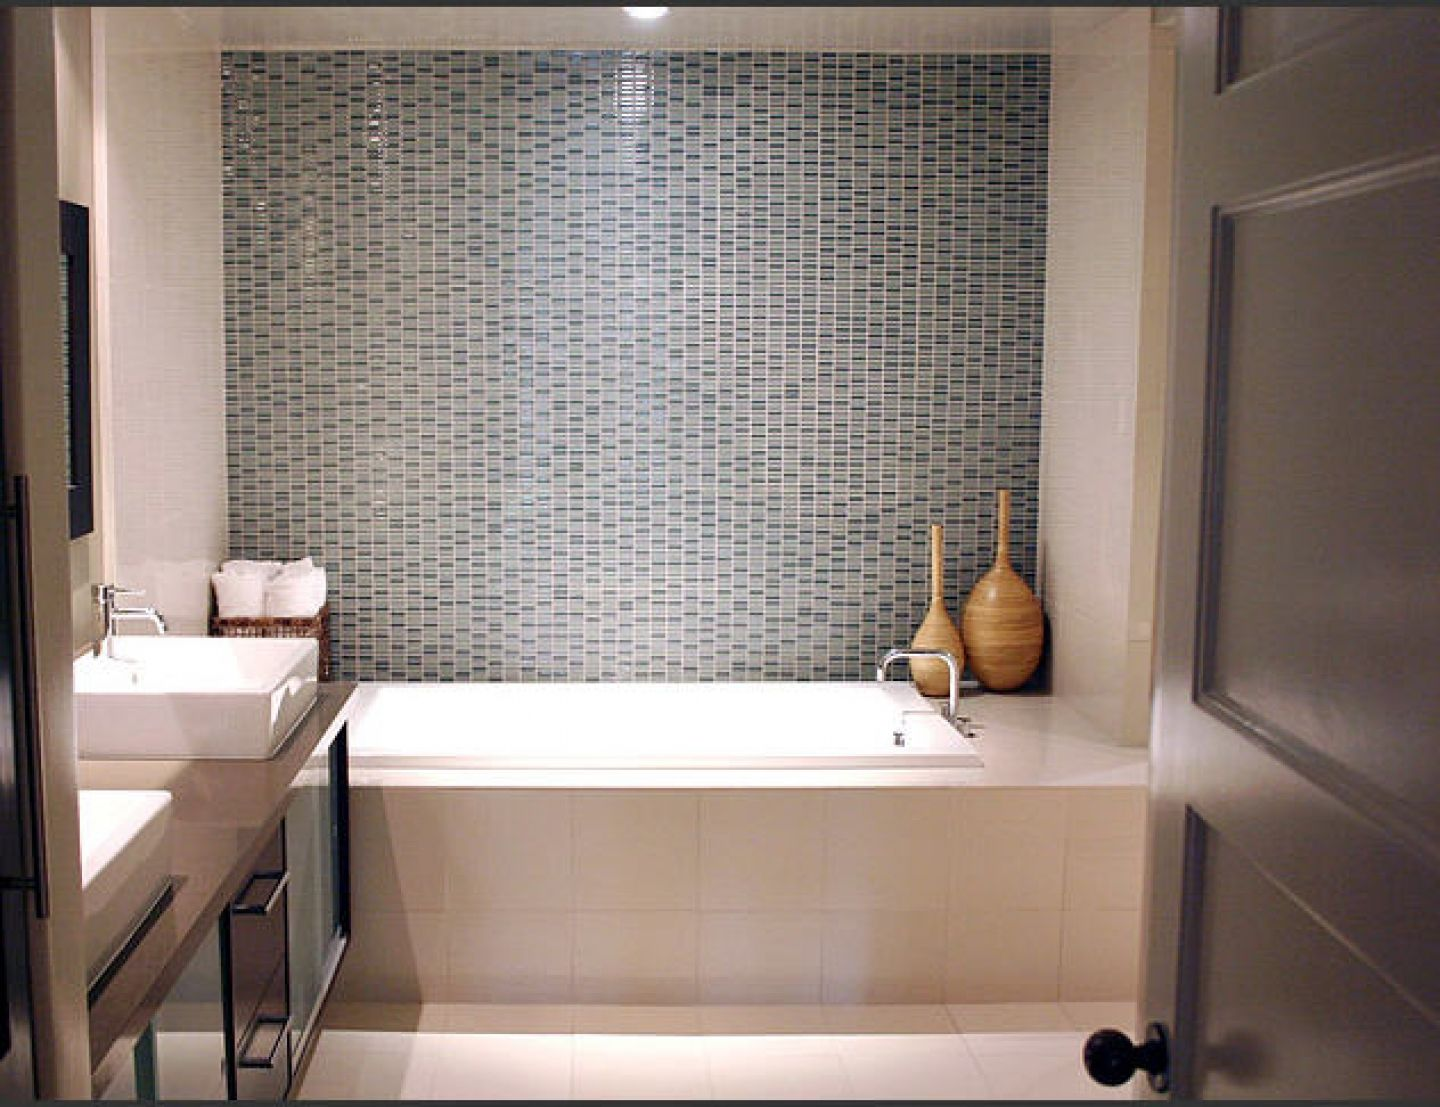 Bathroom small remodels with cream tile floor feat white bathtub and square shape sink grey wall panel creating also